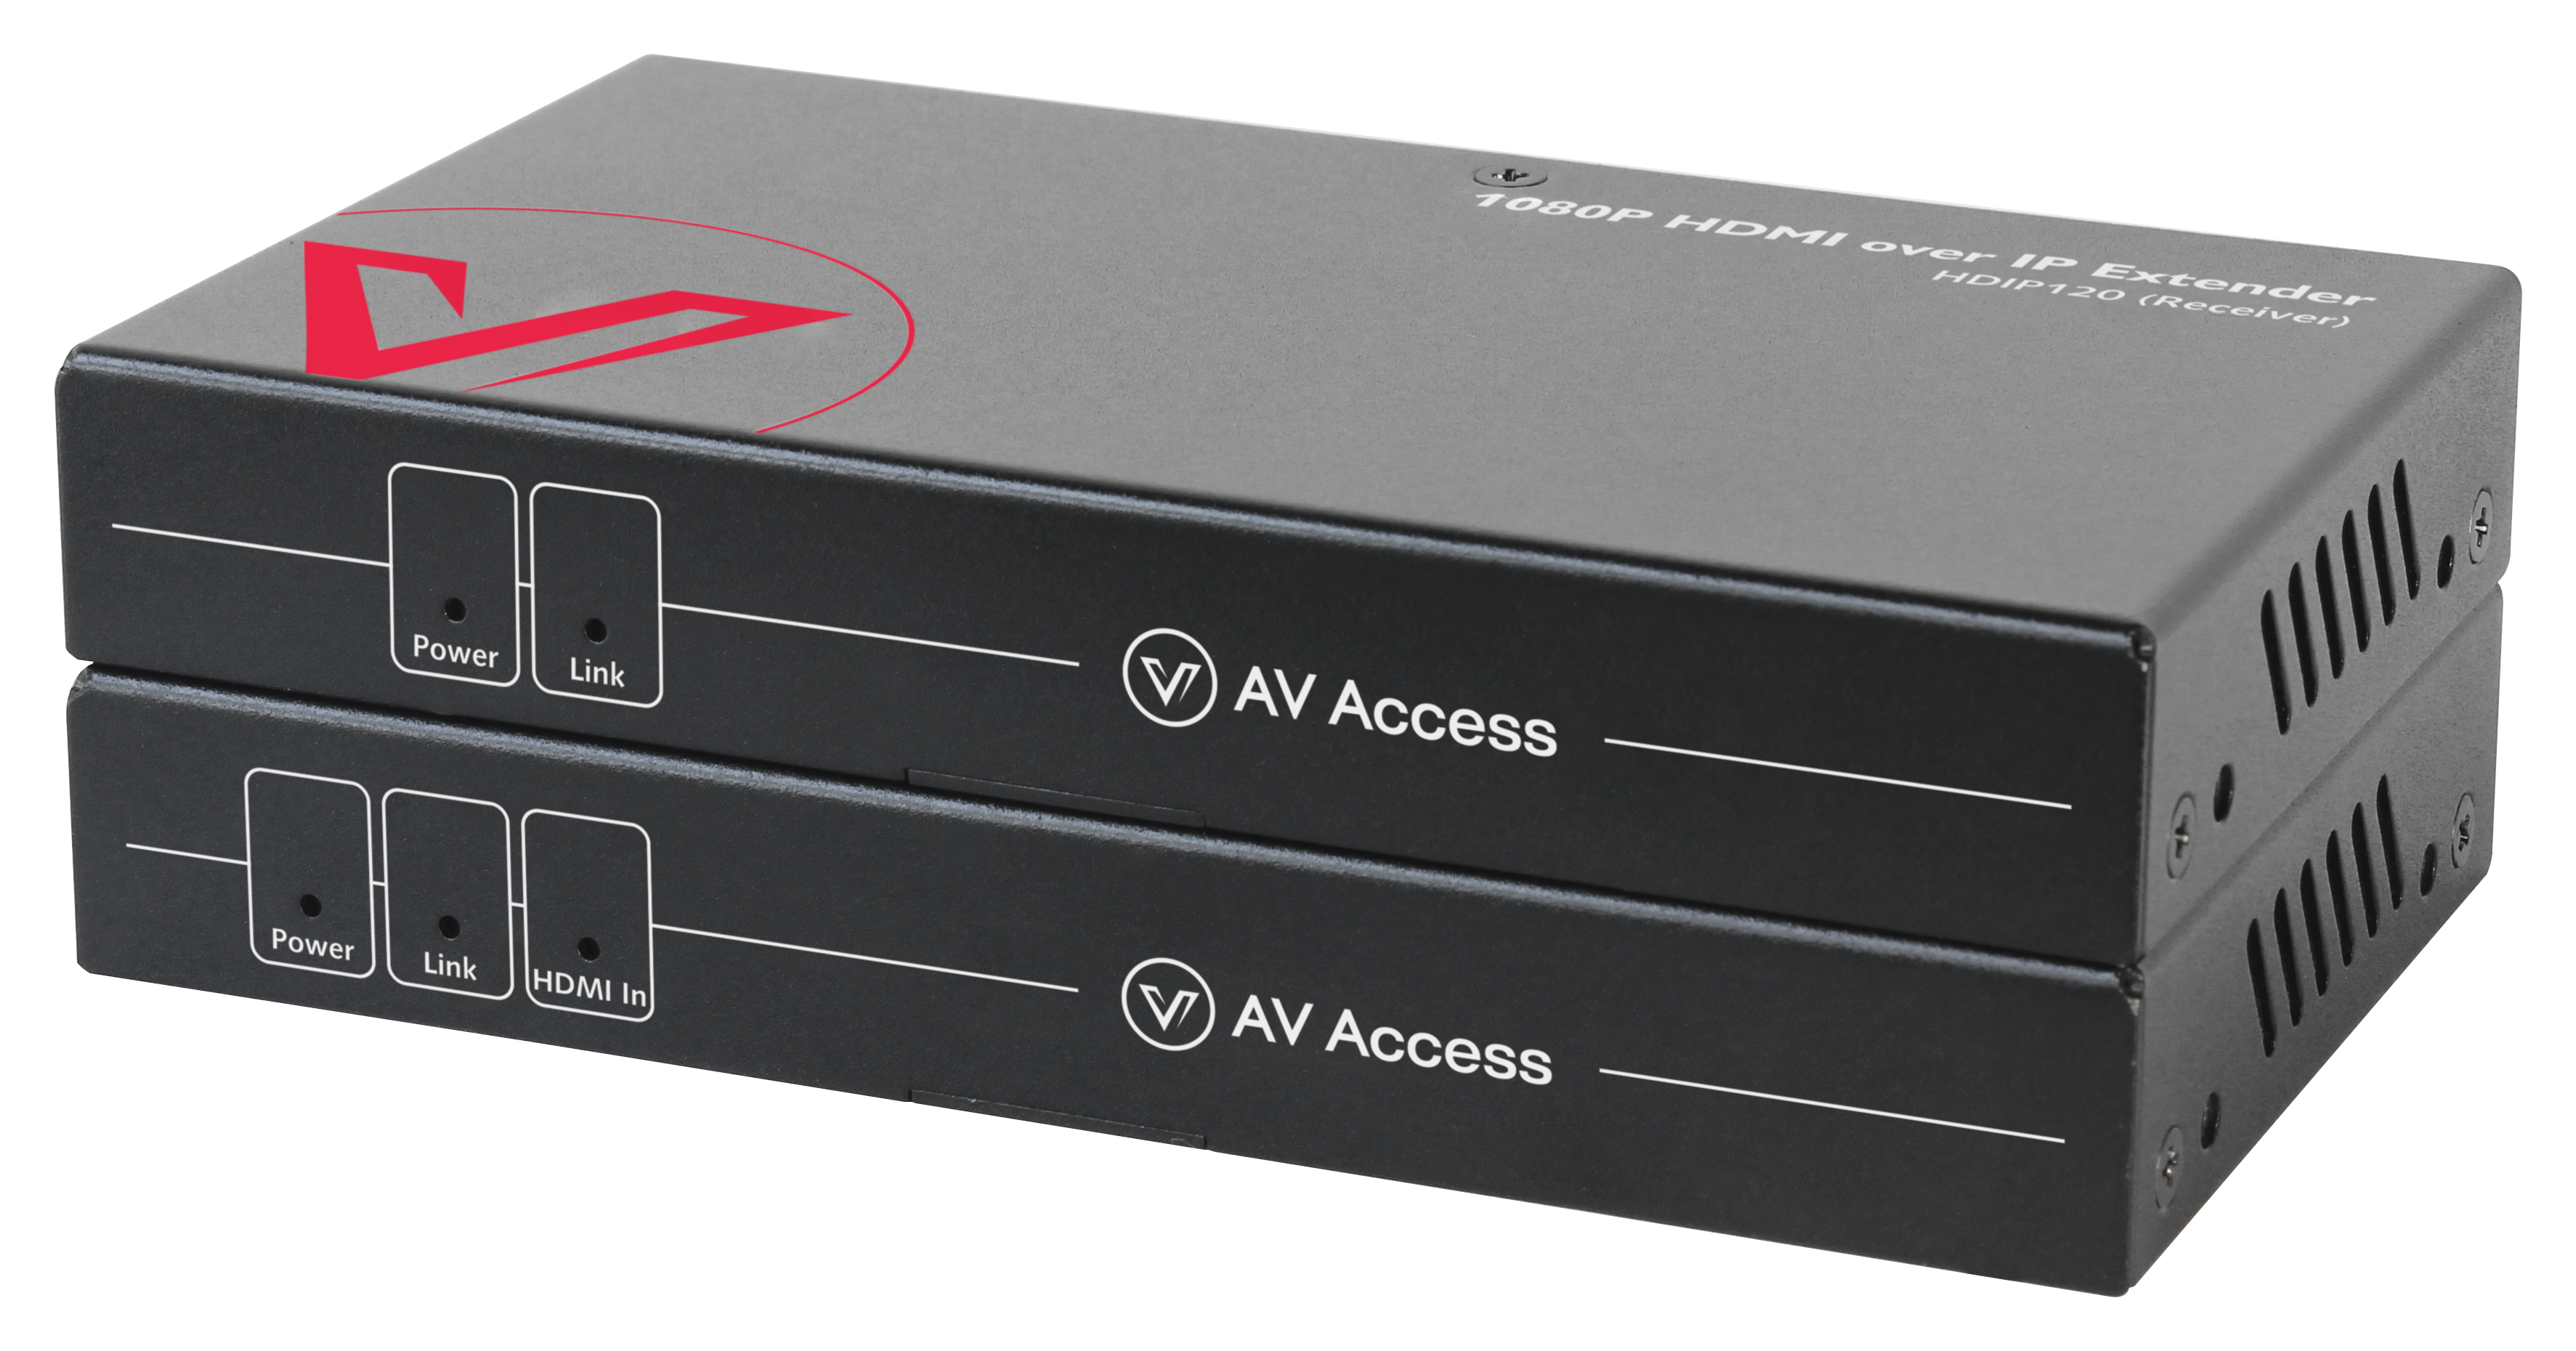 AV Access Launches Its New AV over IP Solution to Help Build an Extender Splitter Combo in Home and Business Applications